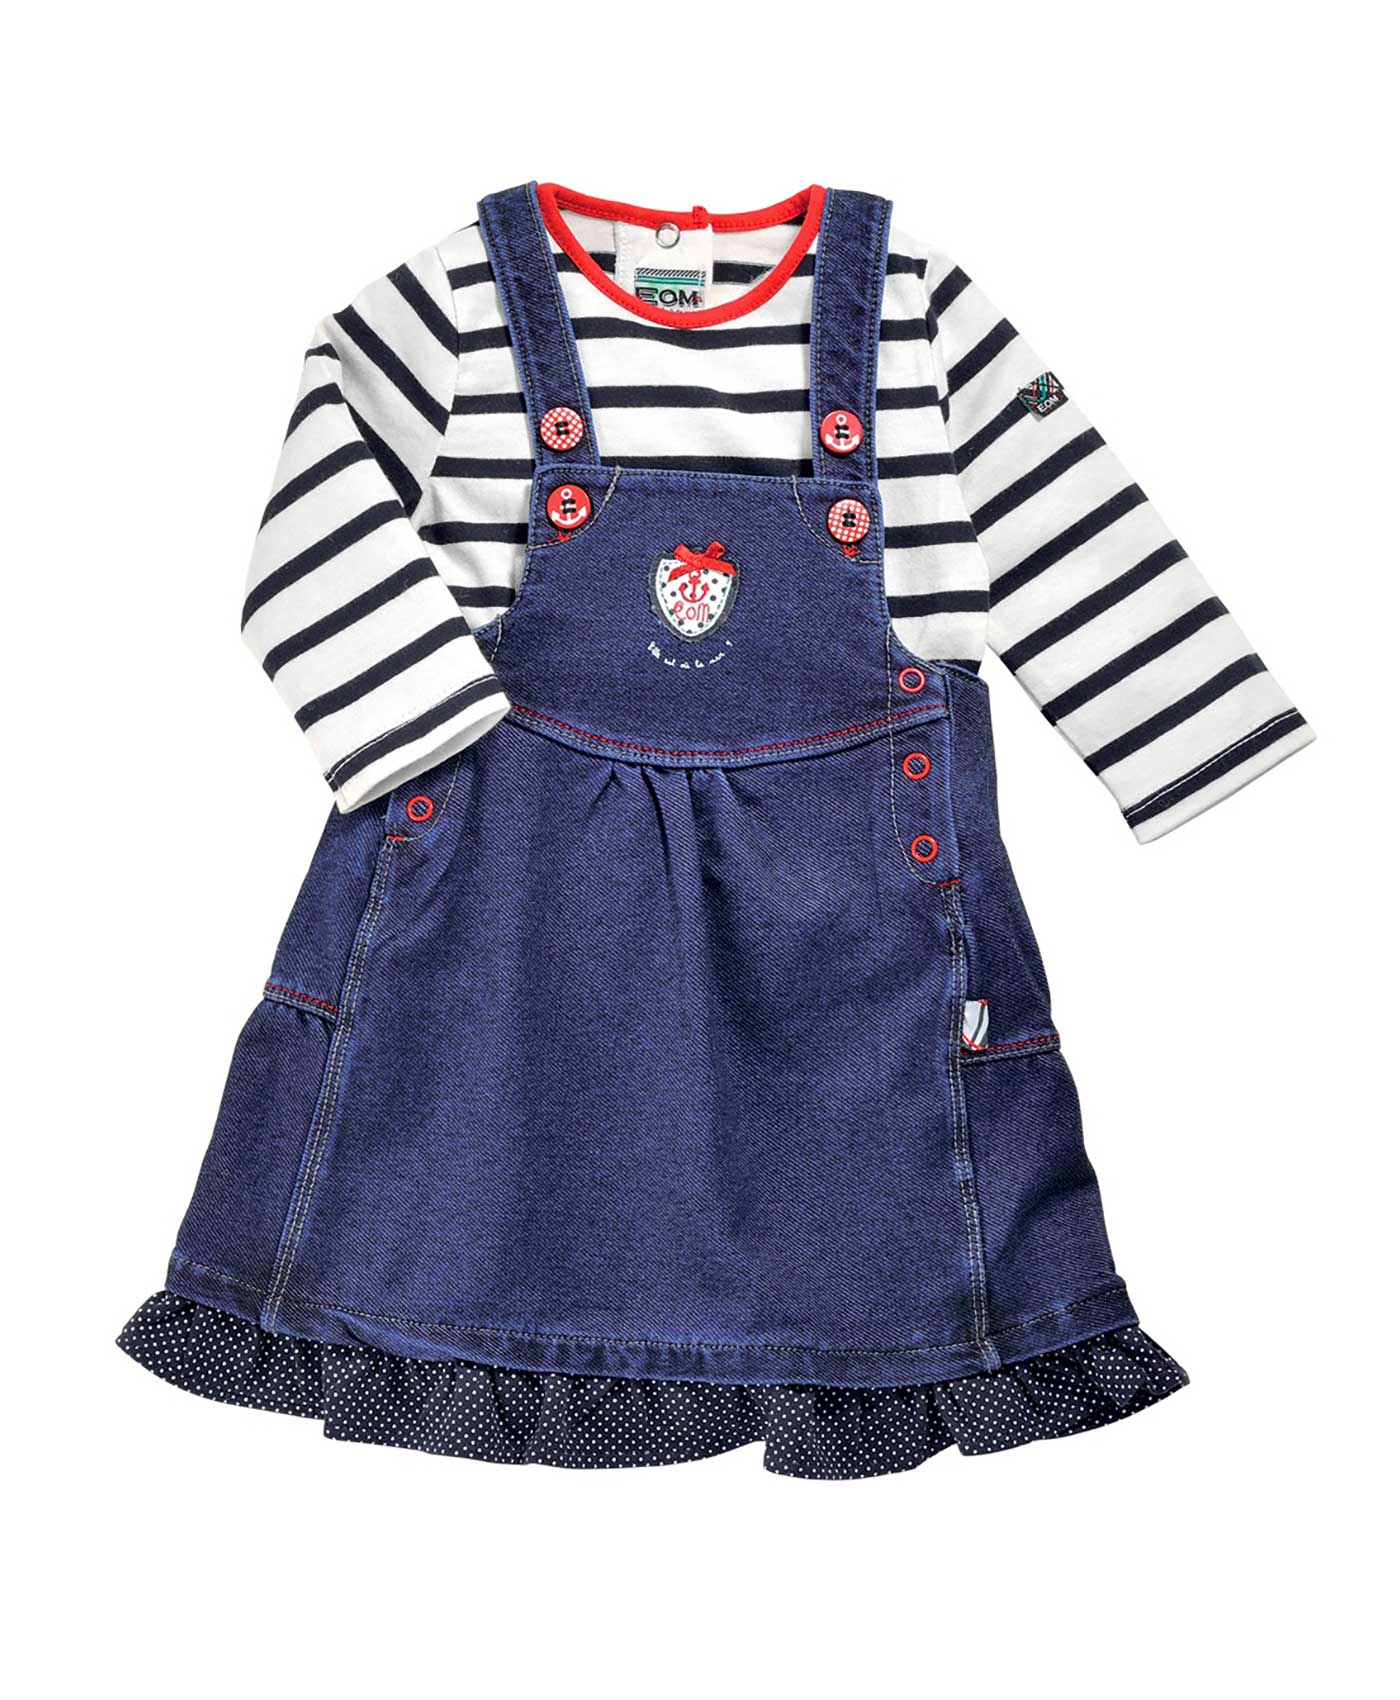 Robe + Tee-shirt bébé fille denim - Mode marine Bébé fille